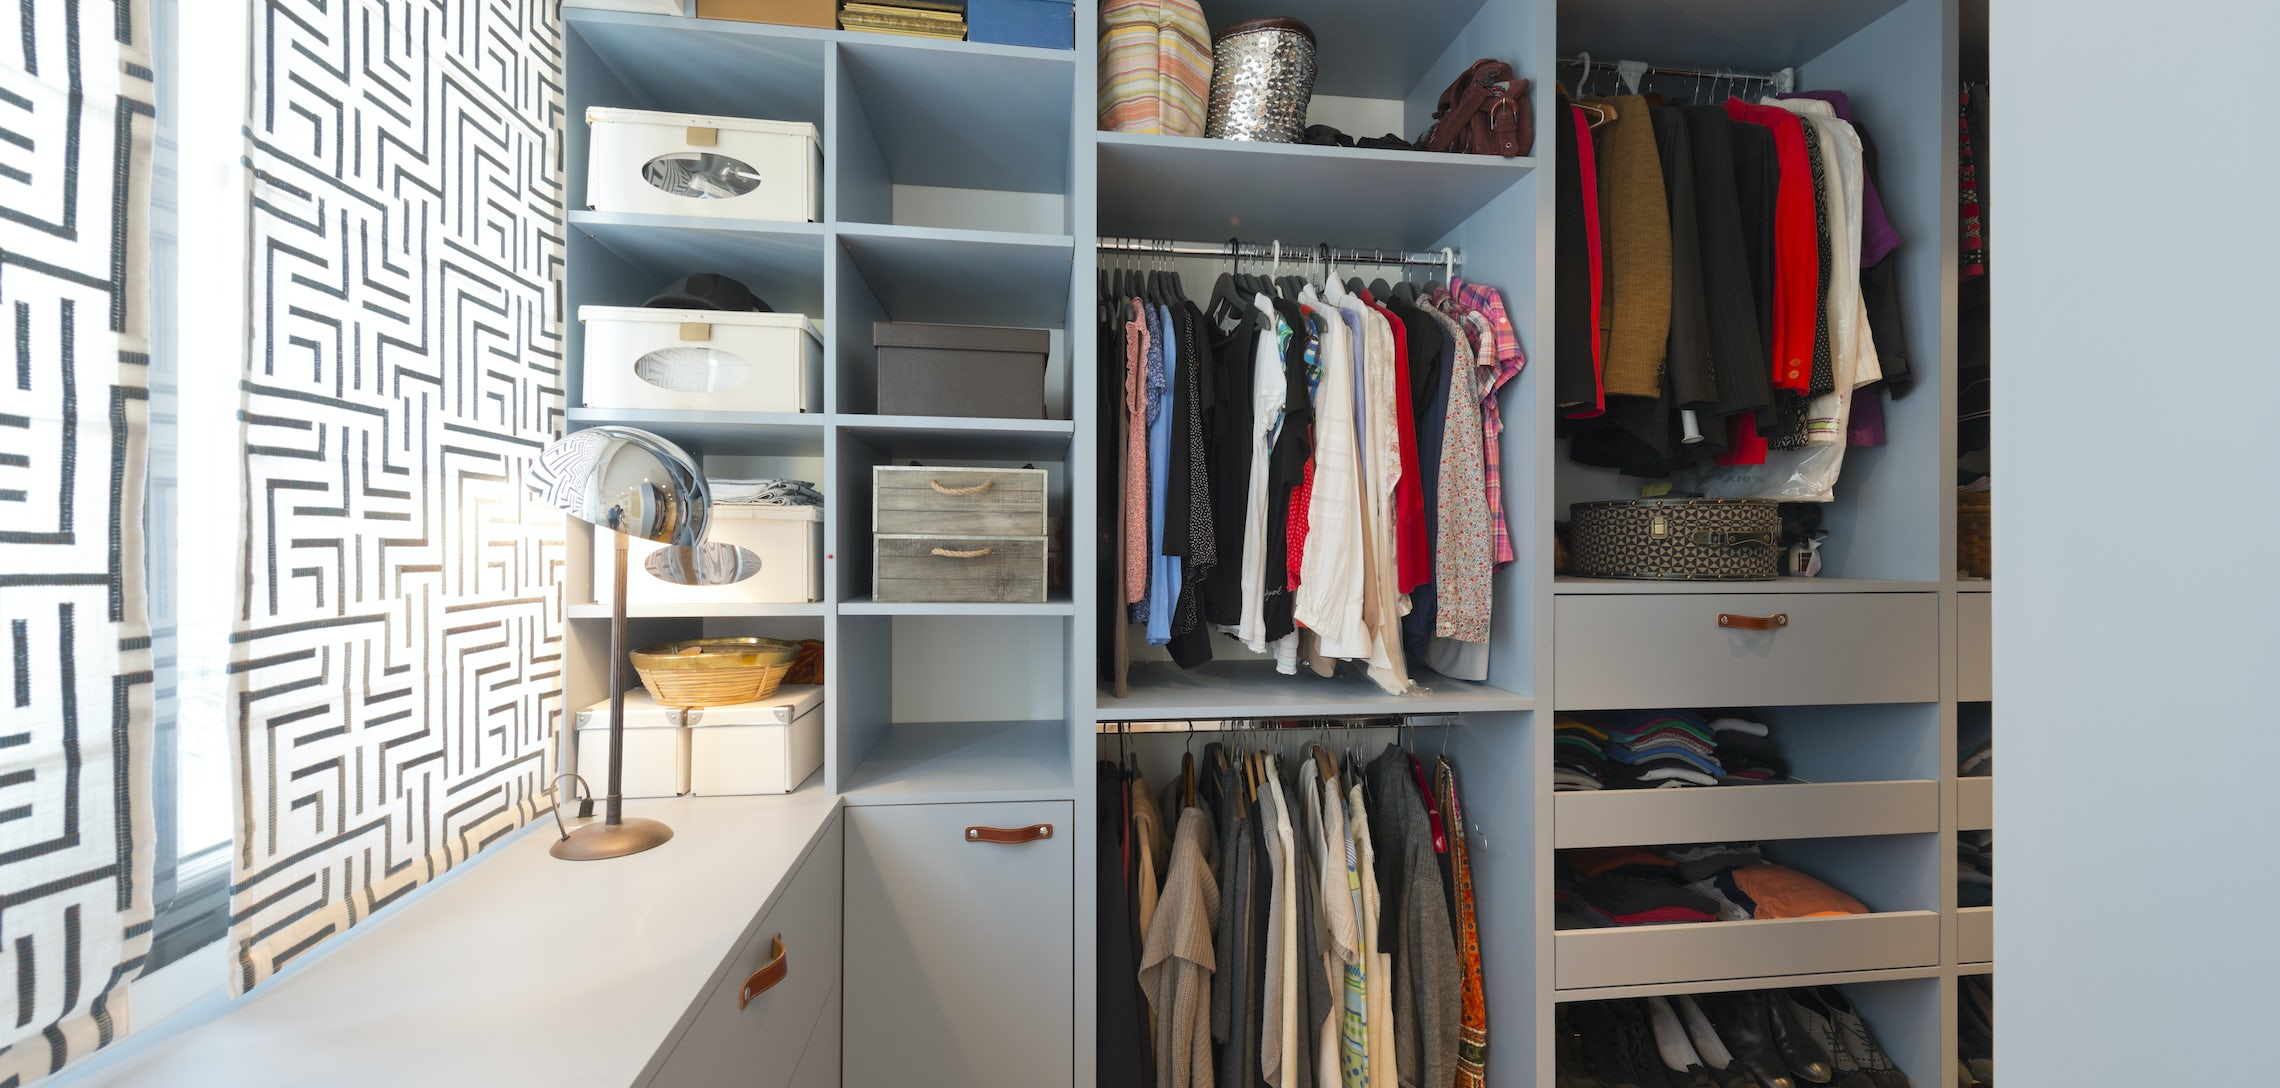 The Marie Kondo Movement Tips For Organizing Your Home And Life